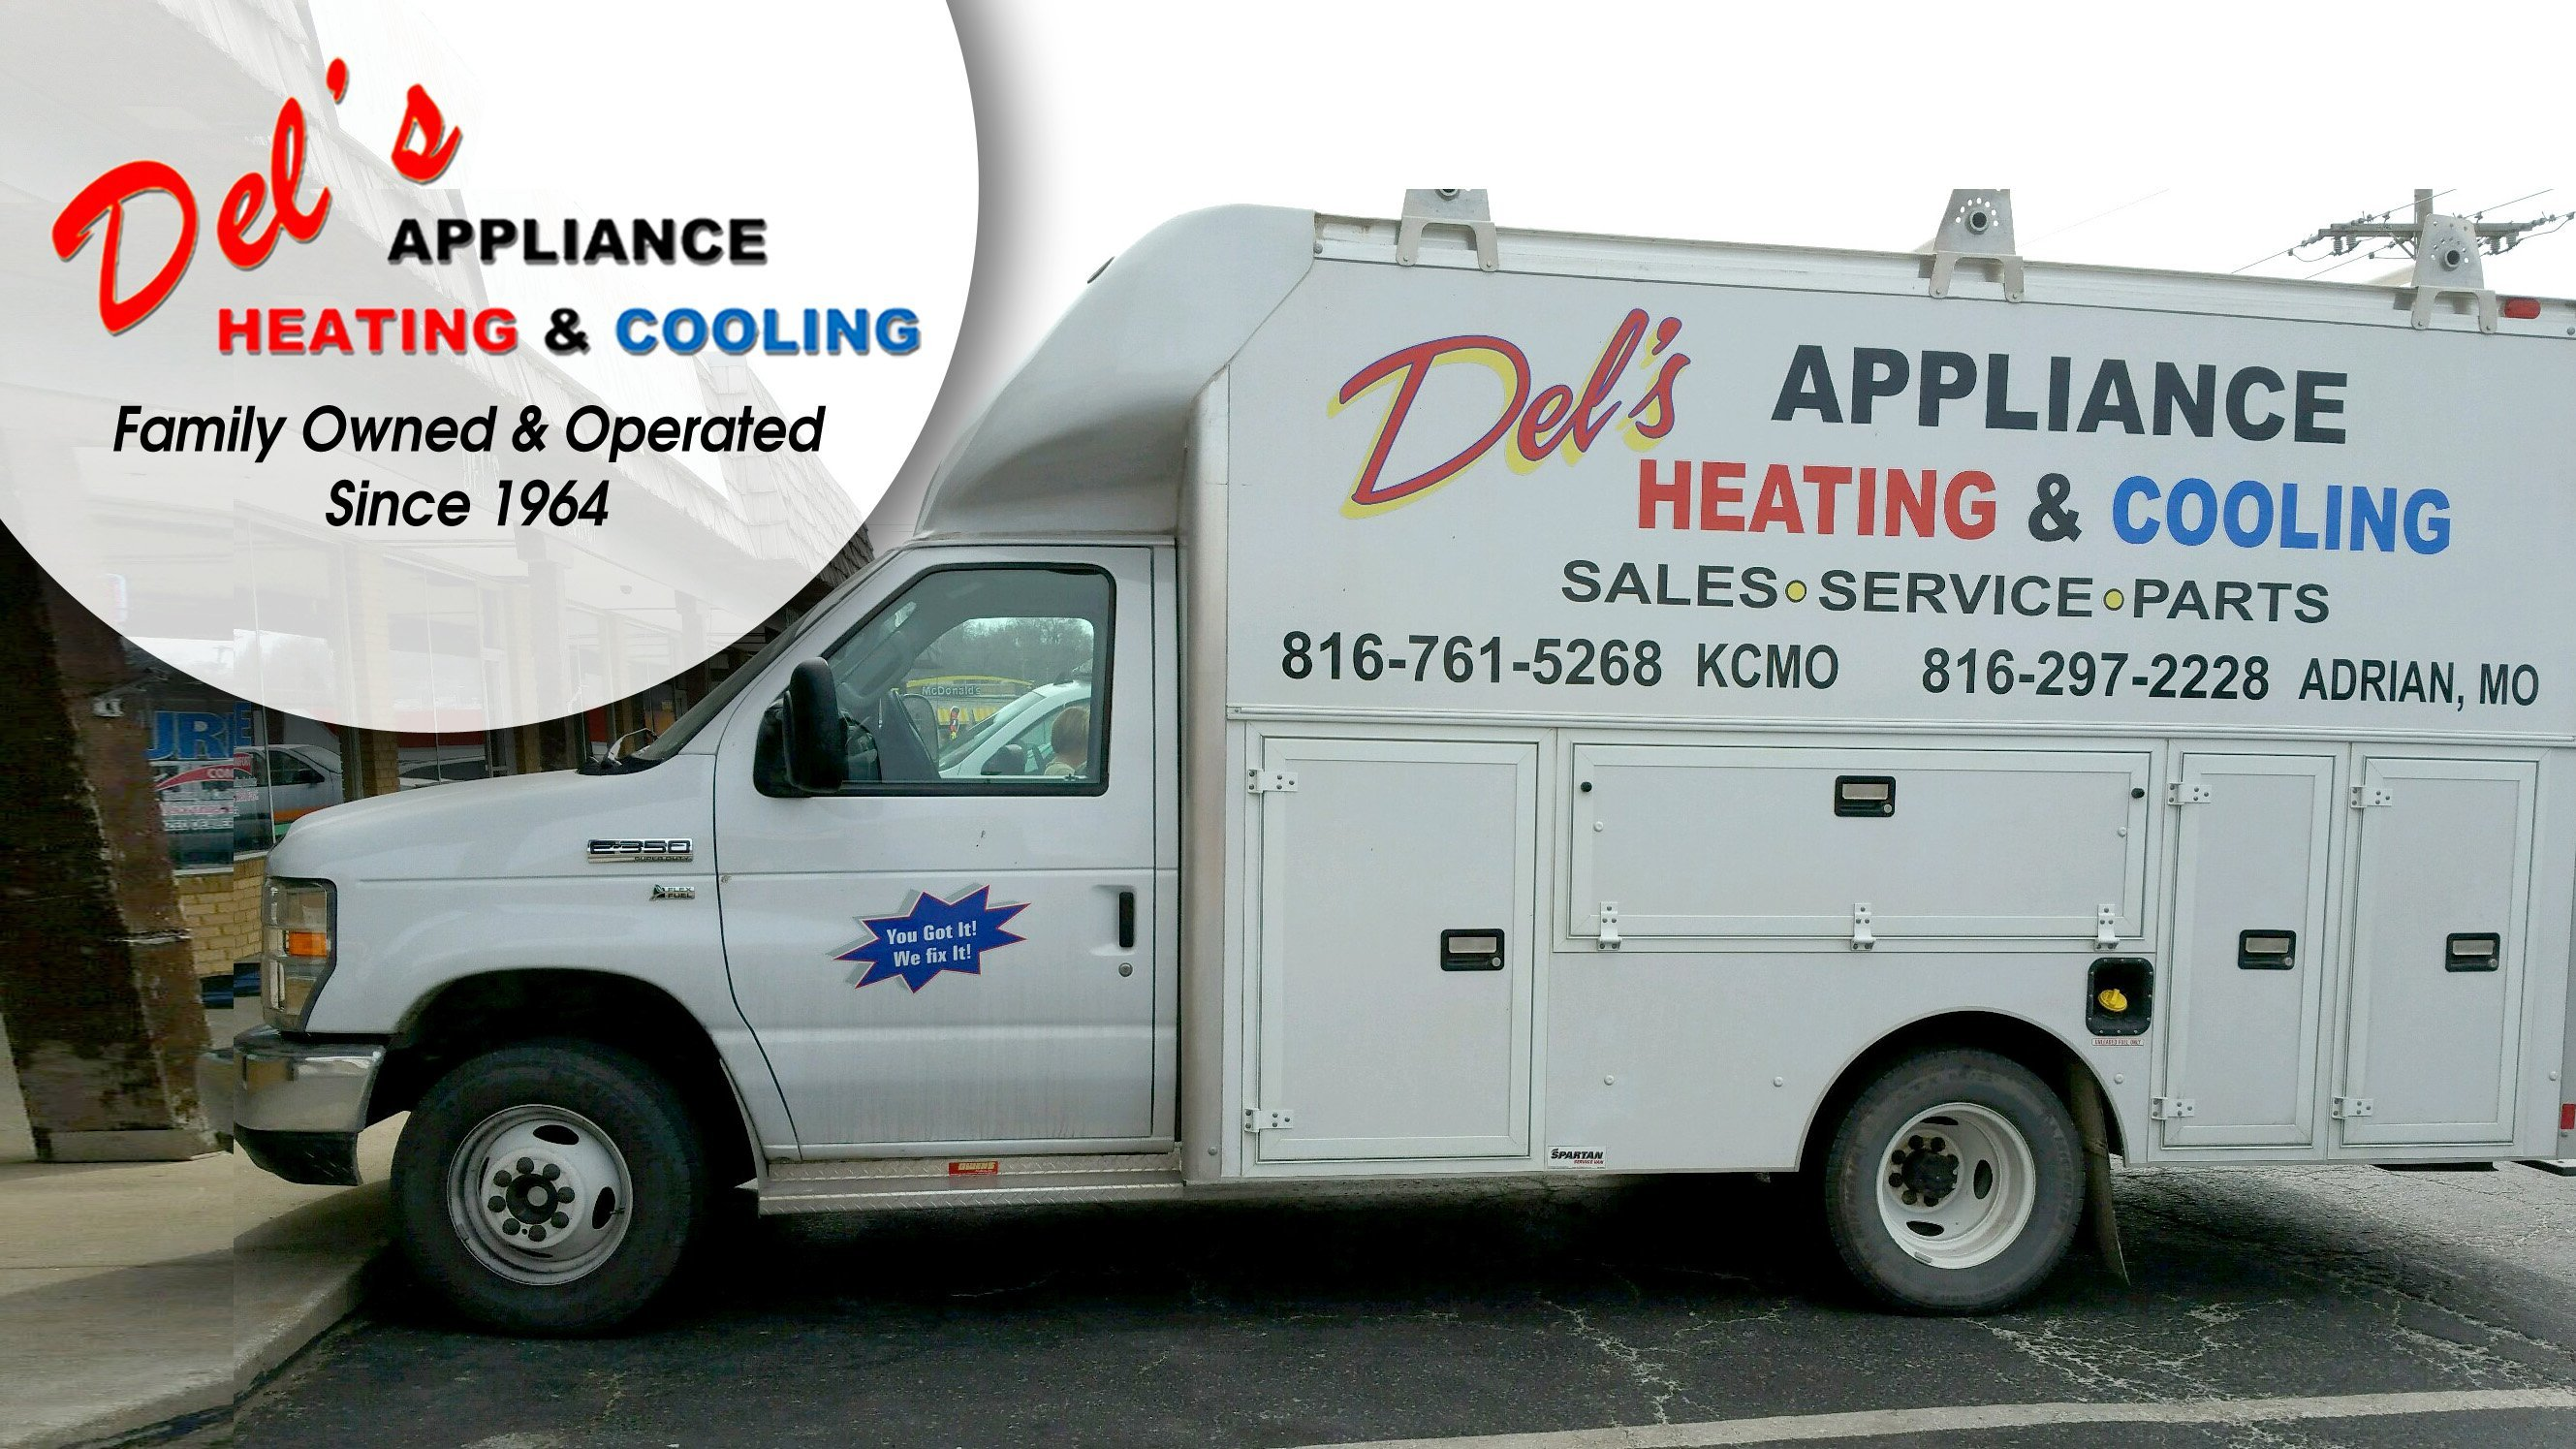 Del S Appliance Heating Amp Cooling We Service All Makes